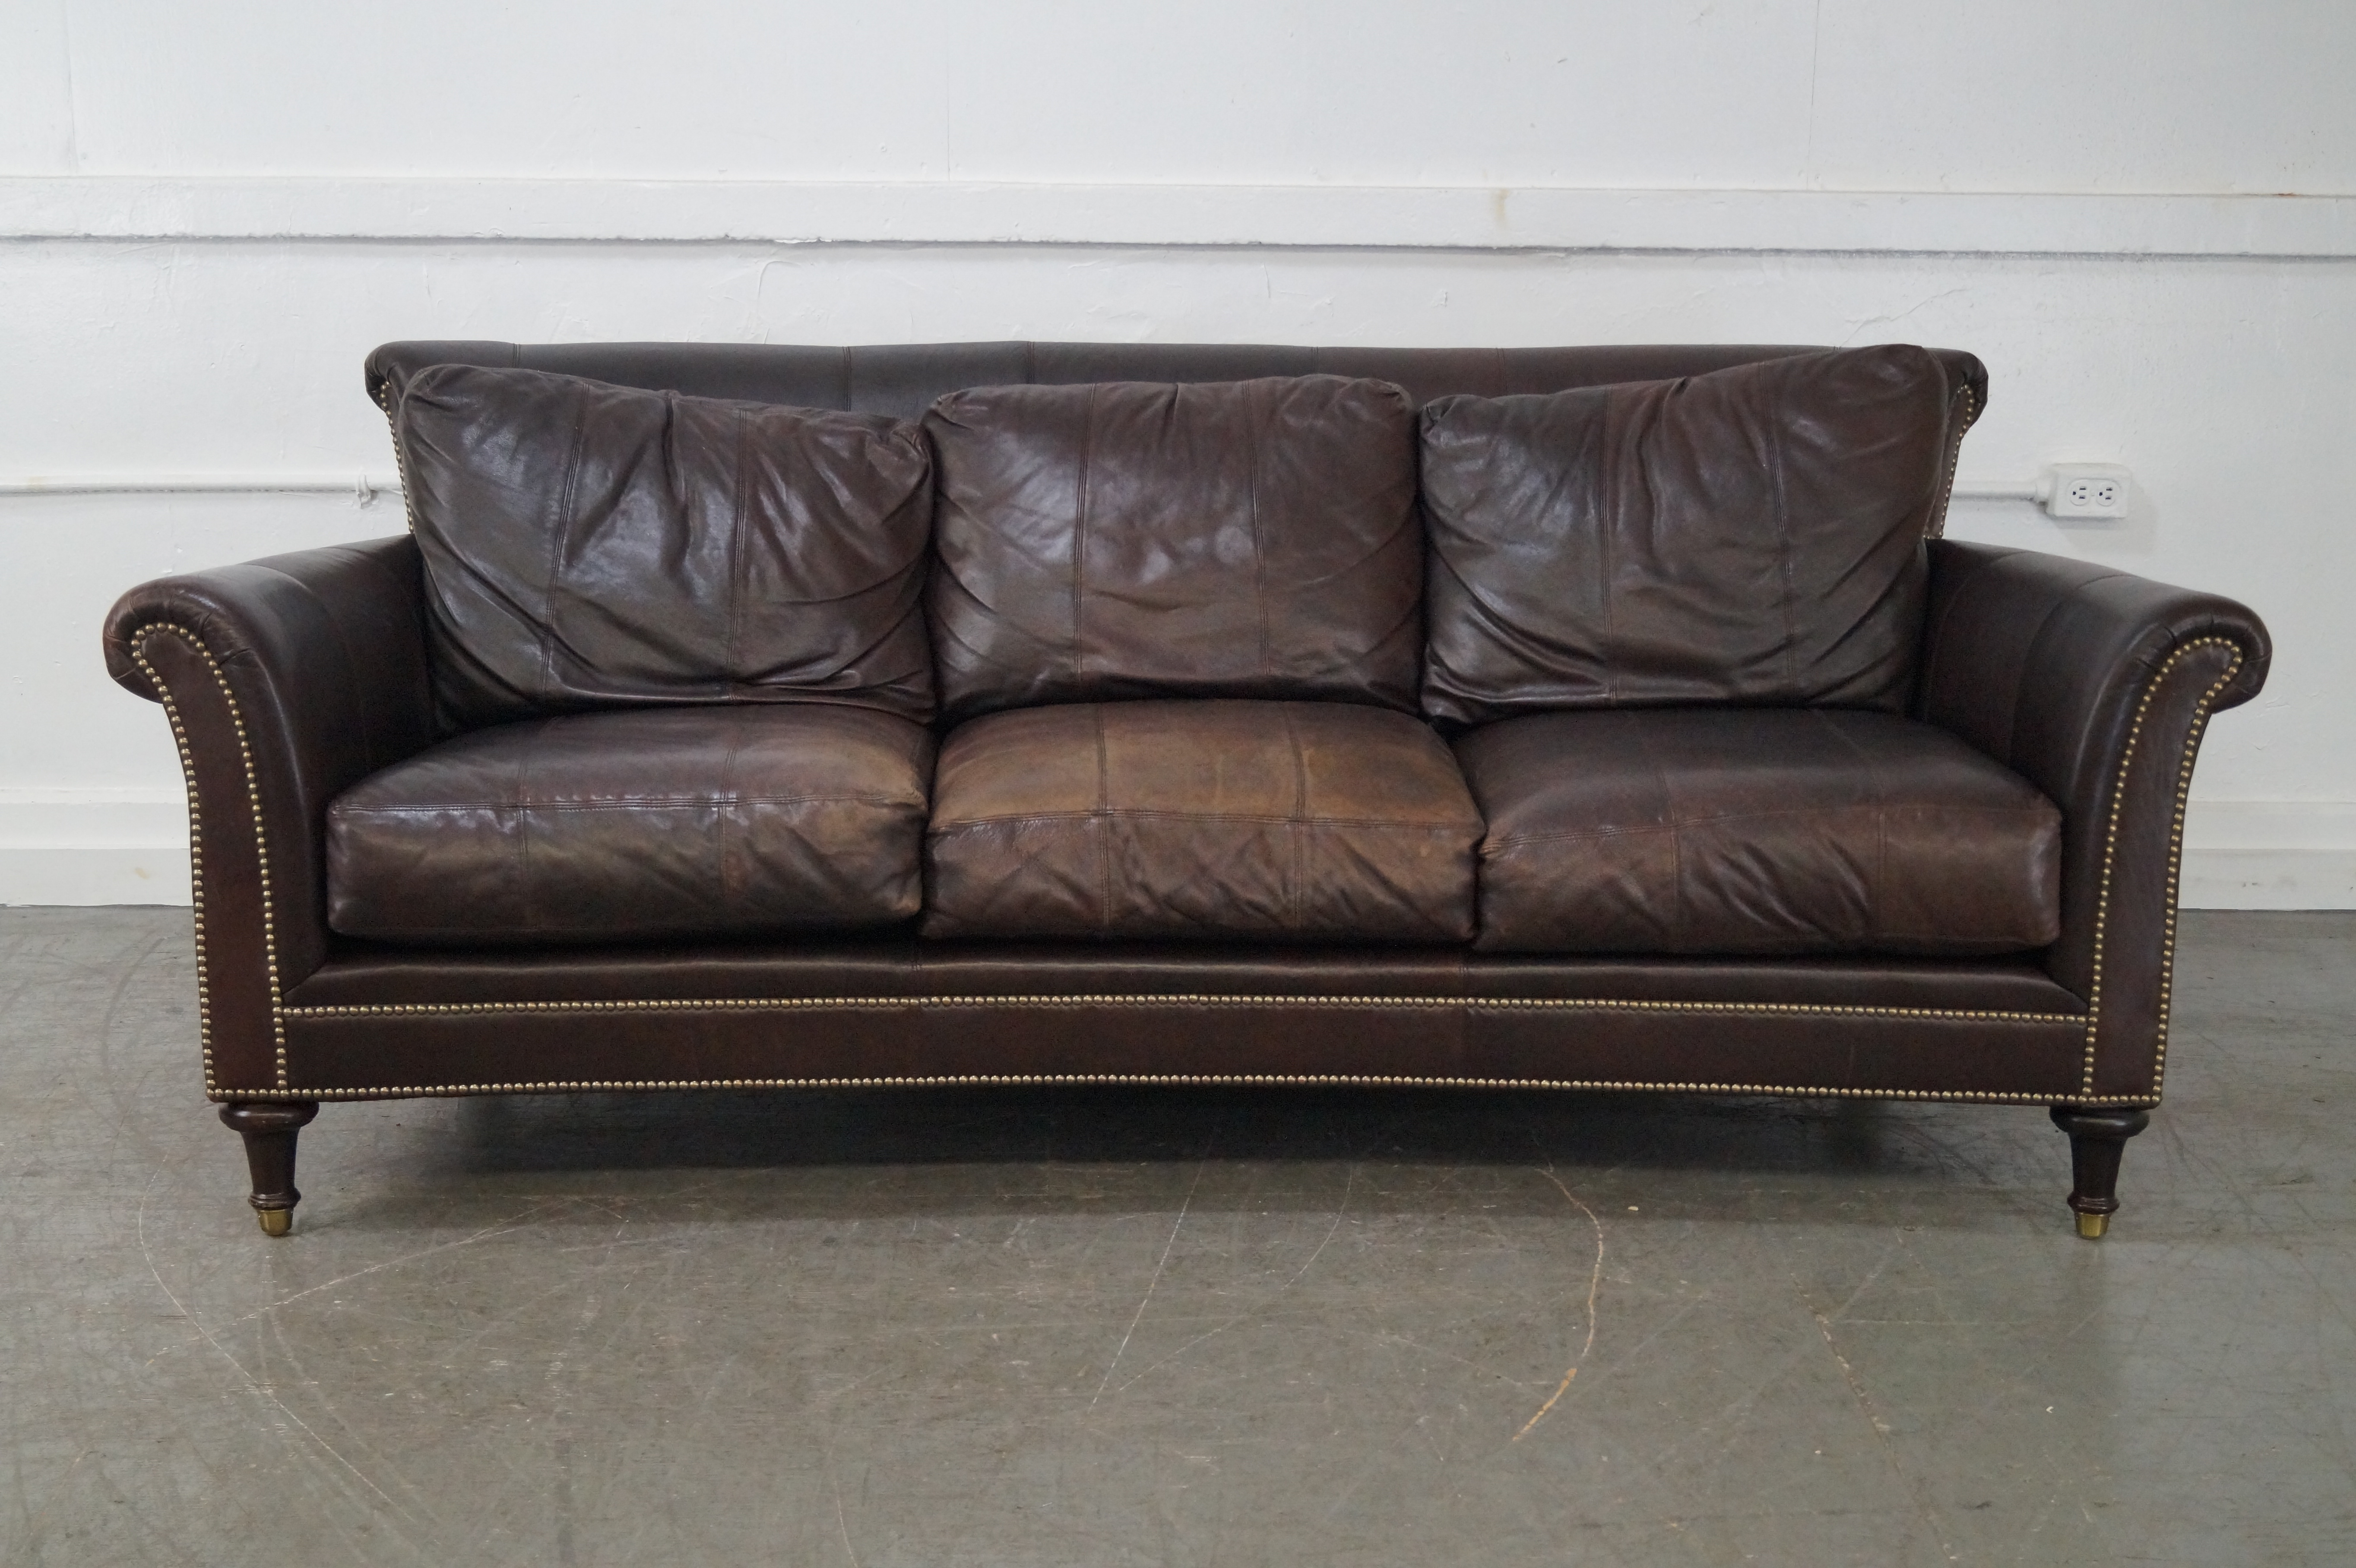 Delicieux Ferguson Copeland Surrey Brown Leather Sofa AGE/COUNTRY OF ORIGIN: Approx  20 Years,